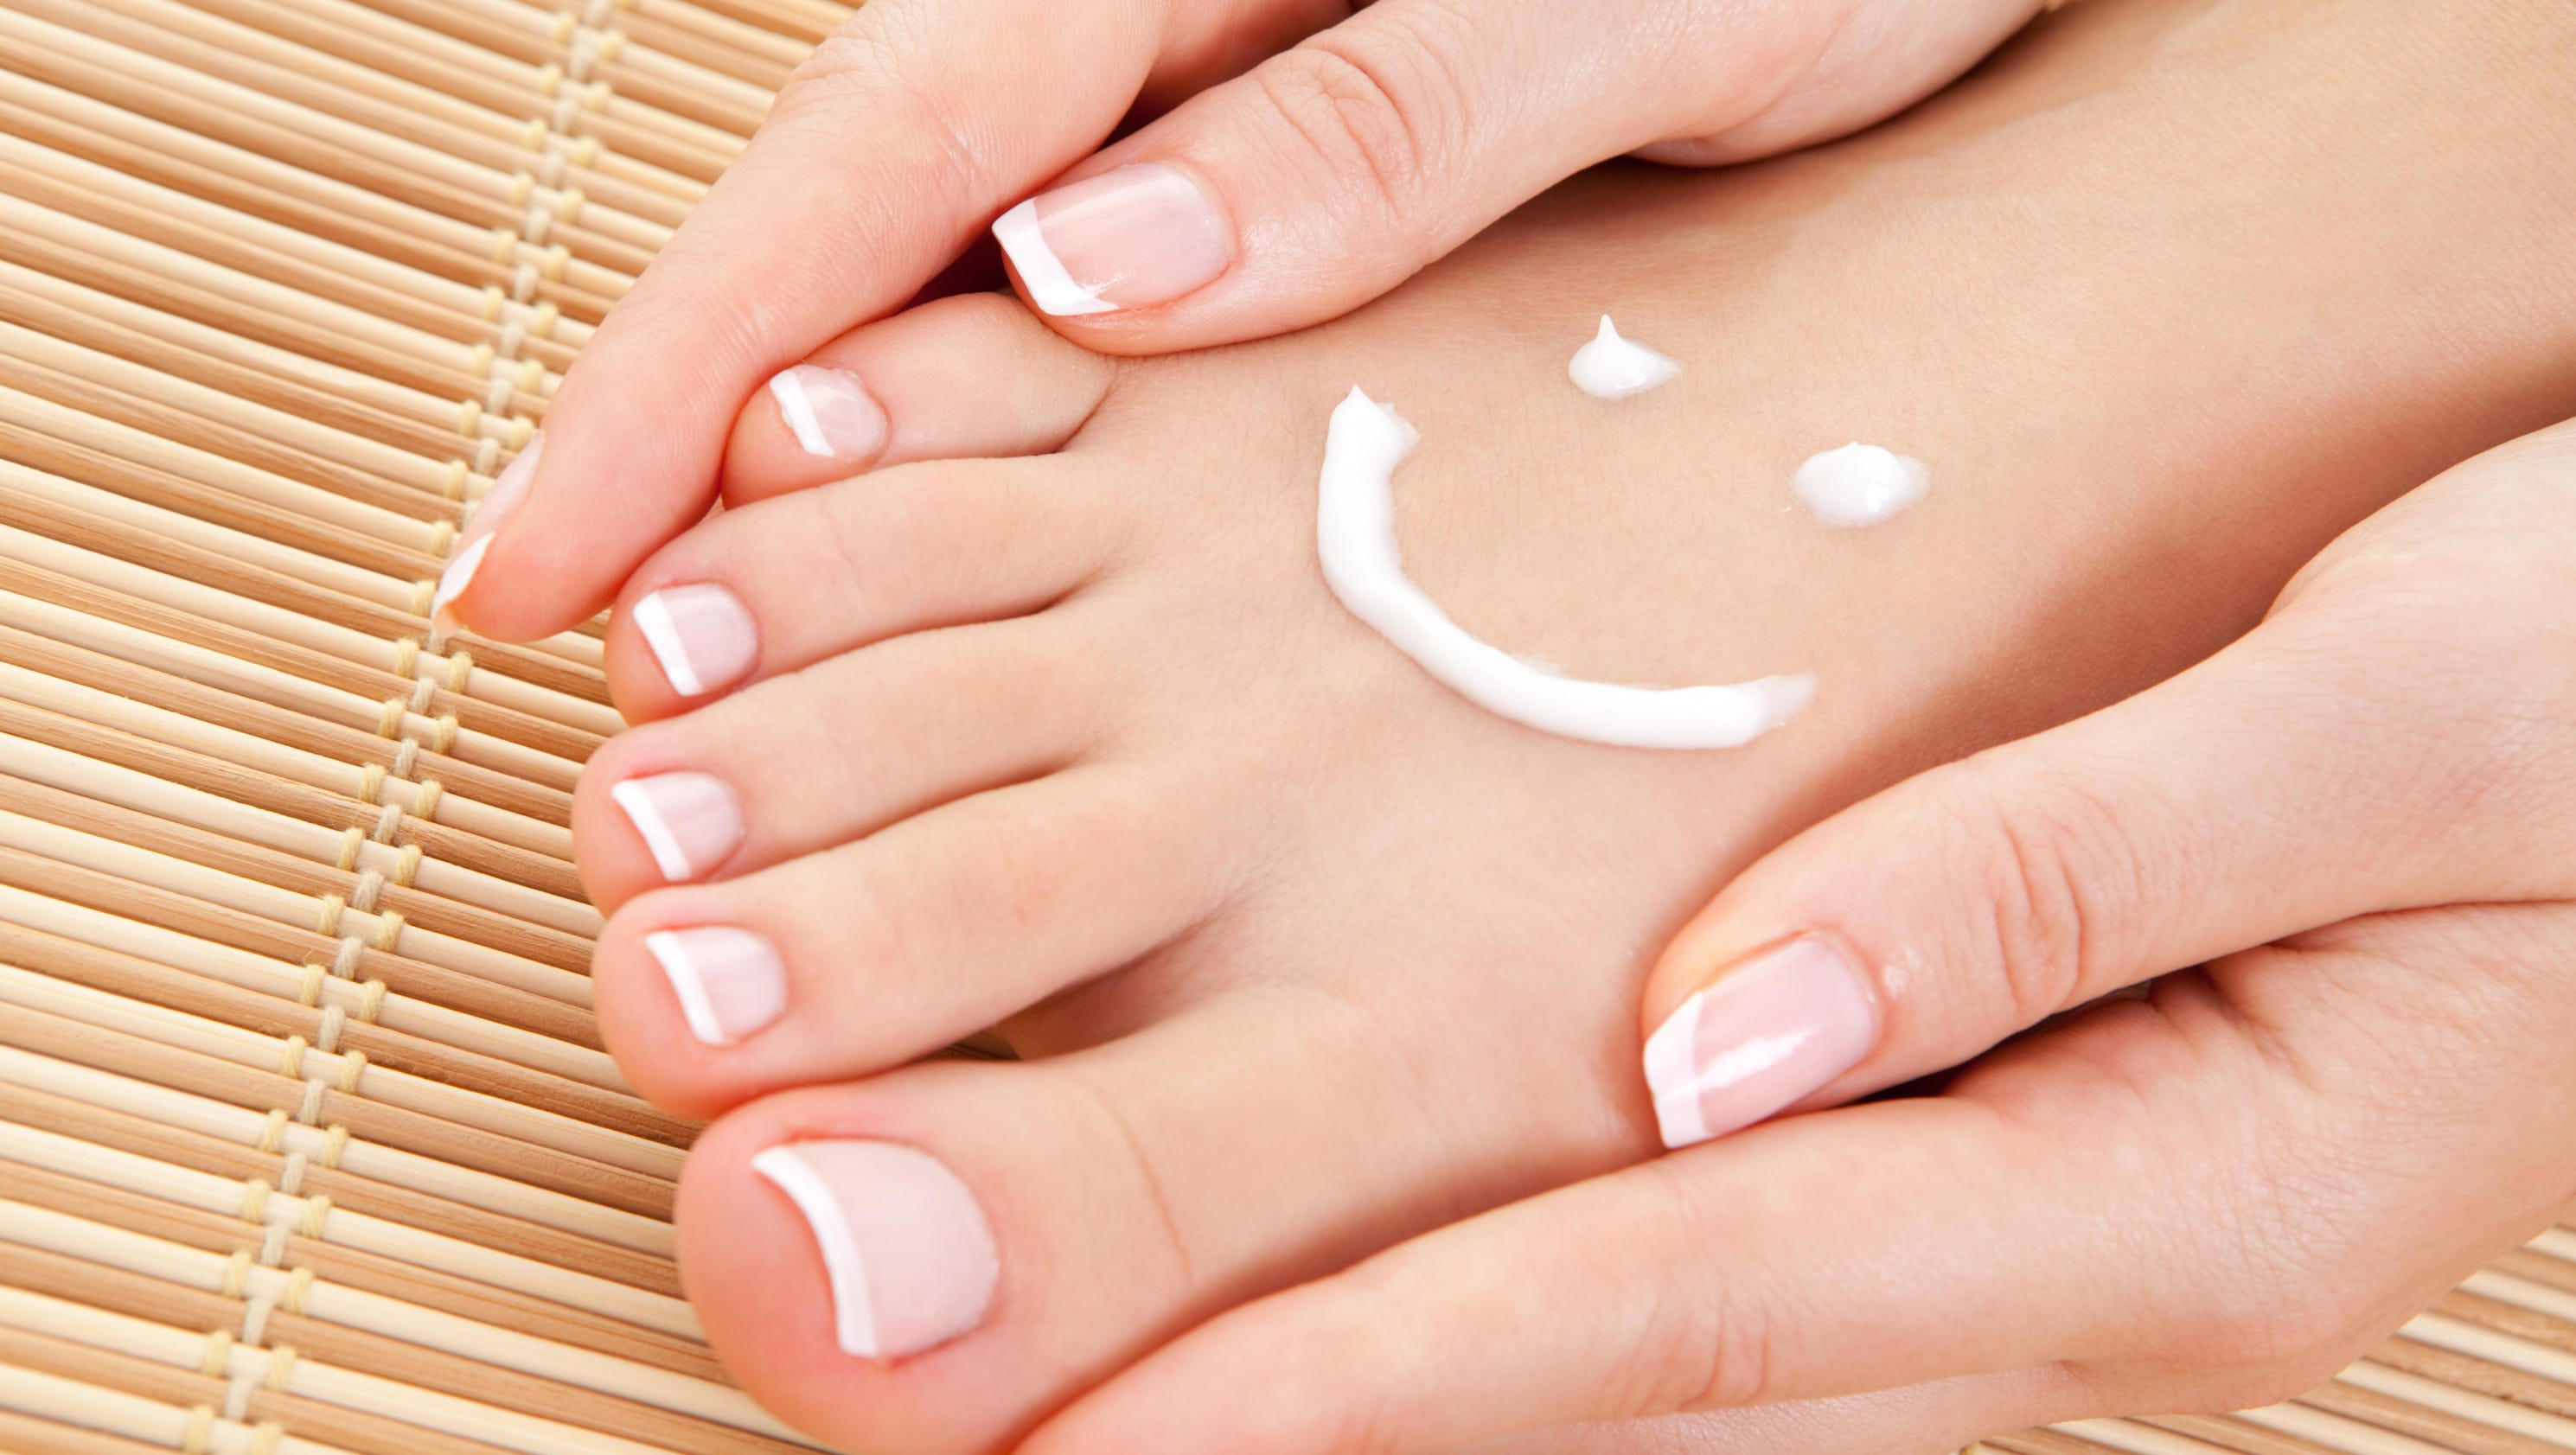 Tronetti: Healthy nails = healthy you